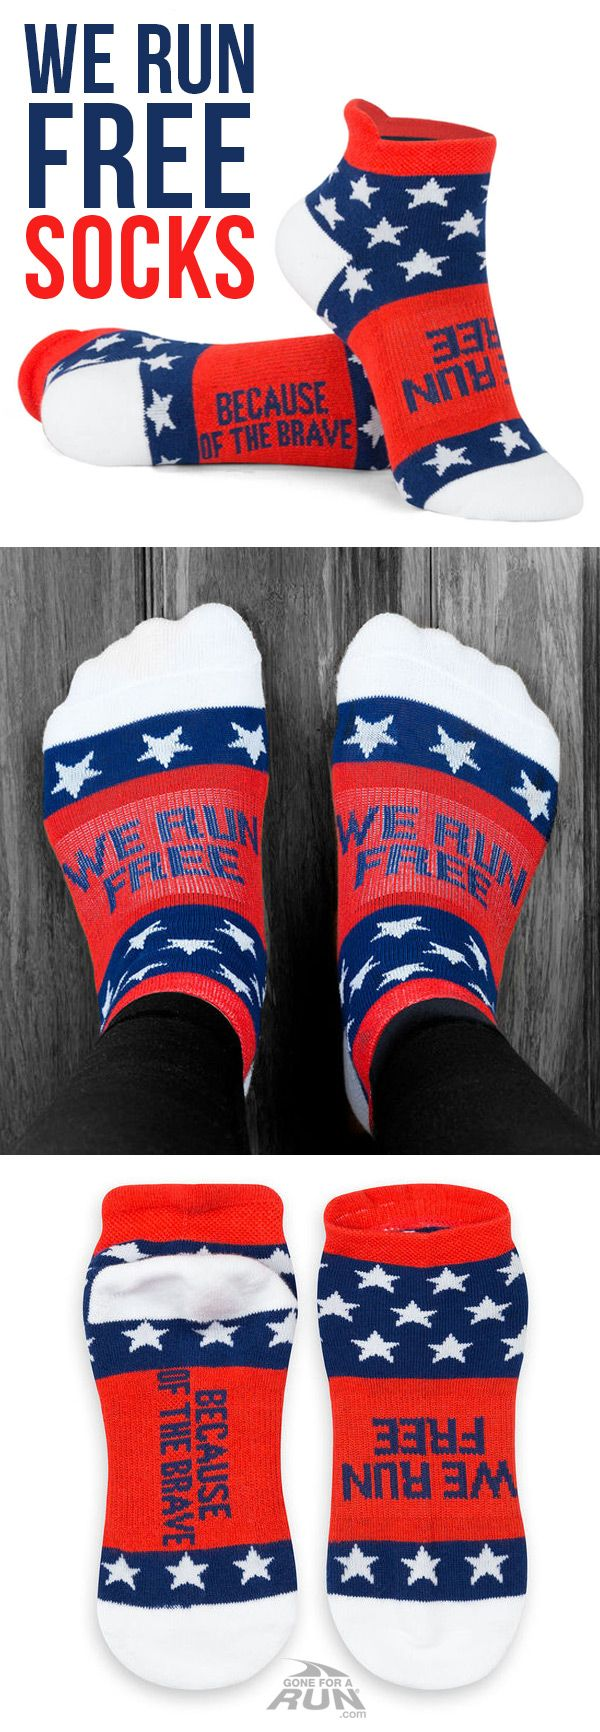 These are one my favorite Patriotic